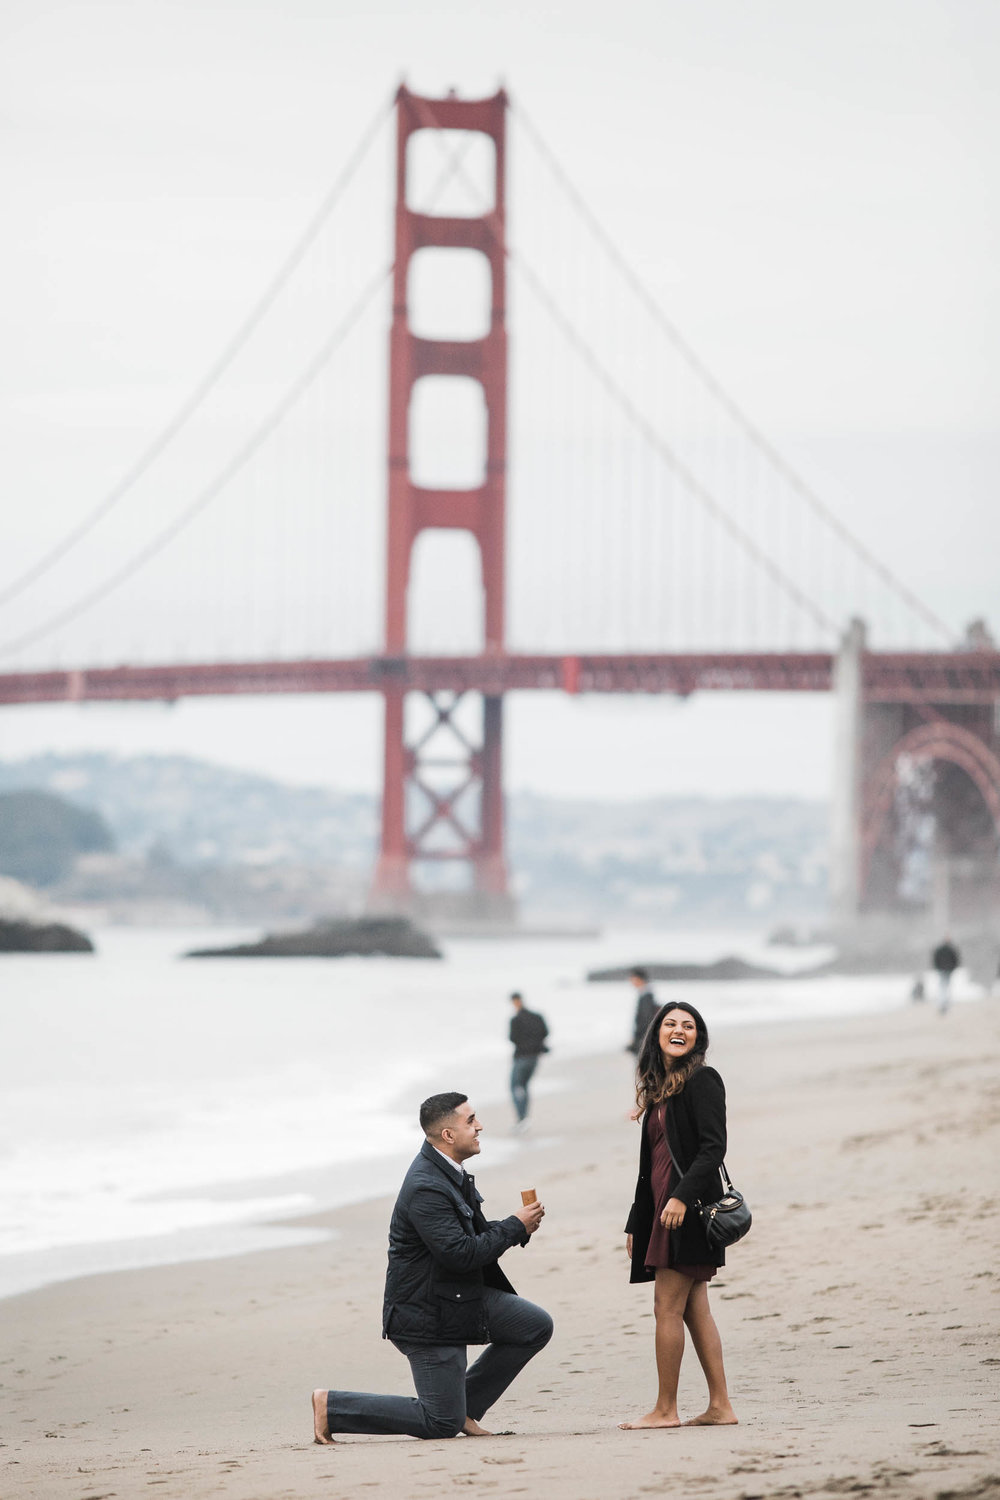 112017_D+S Proposal_Baker Beach_Buena Lane Photography_038.jpg